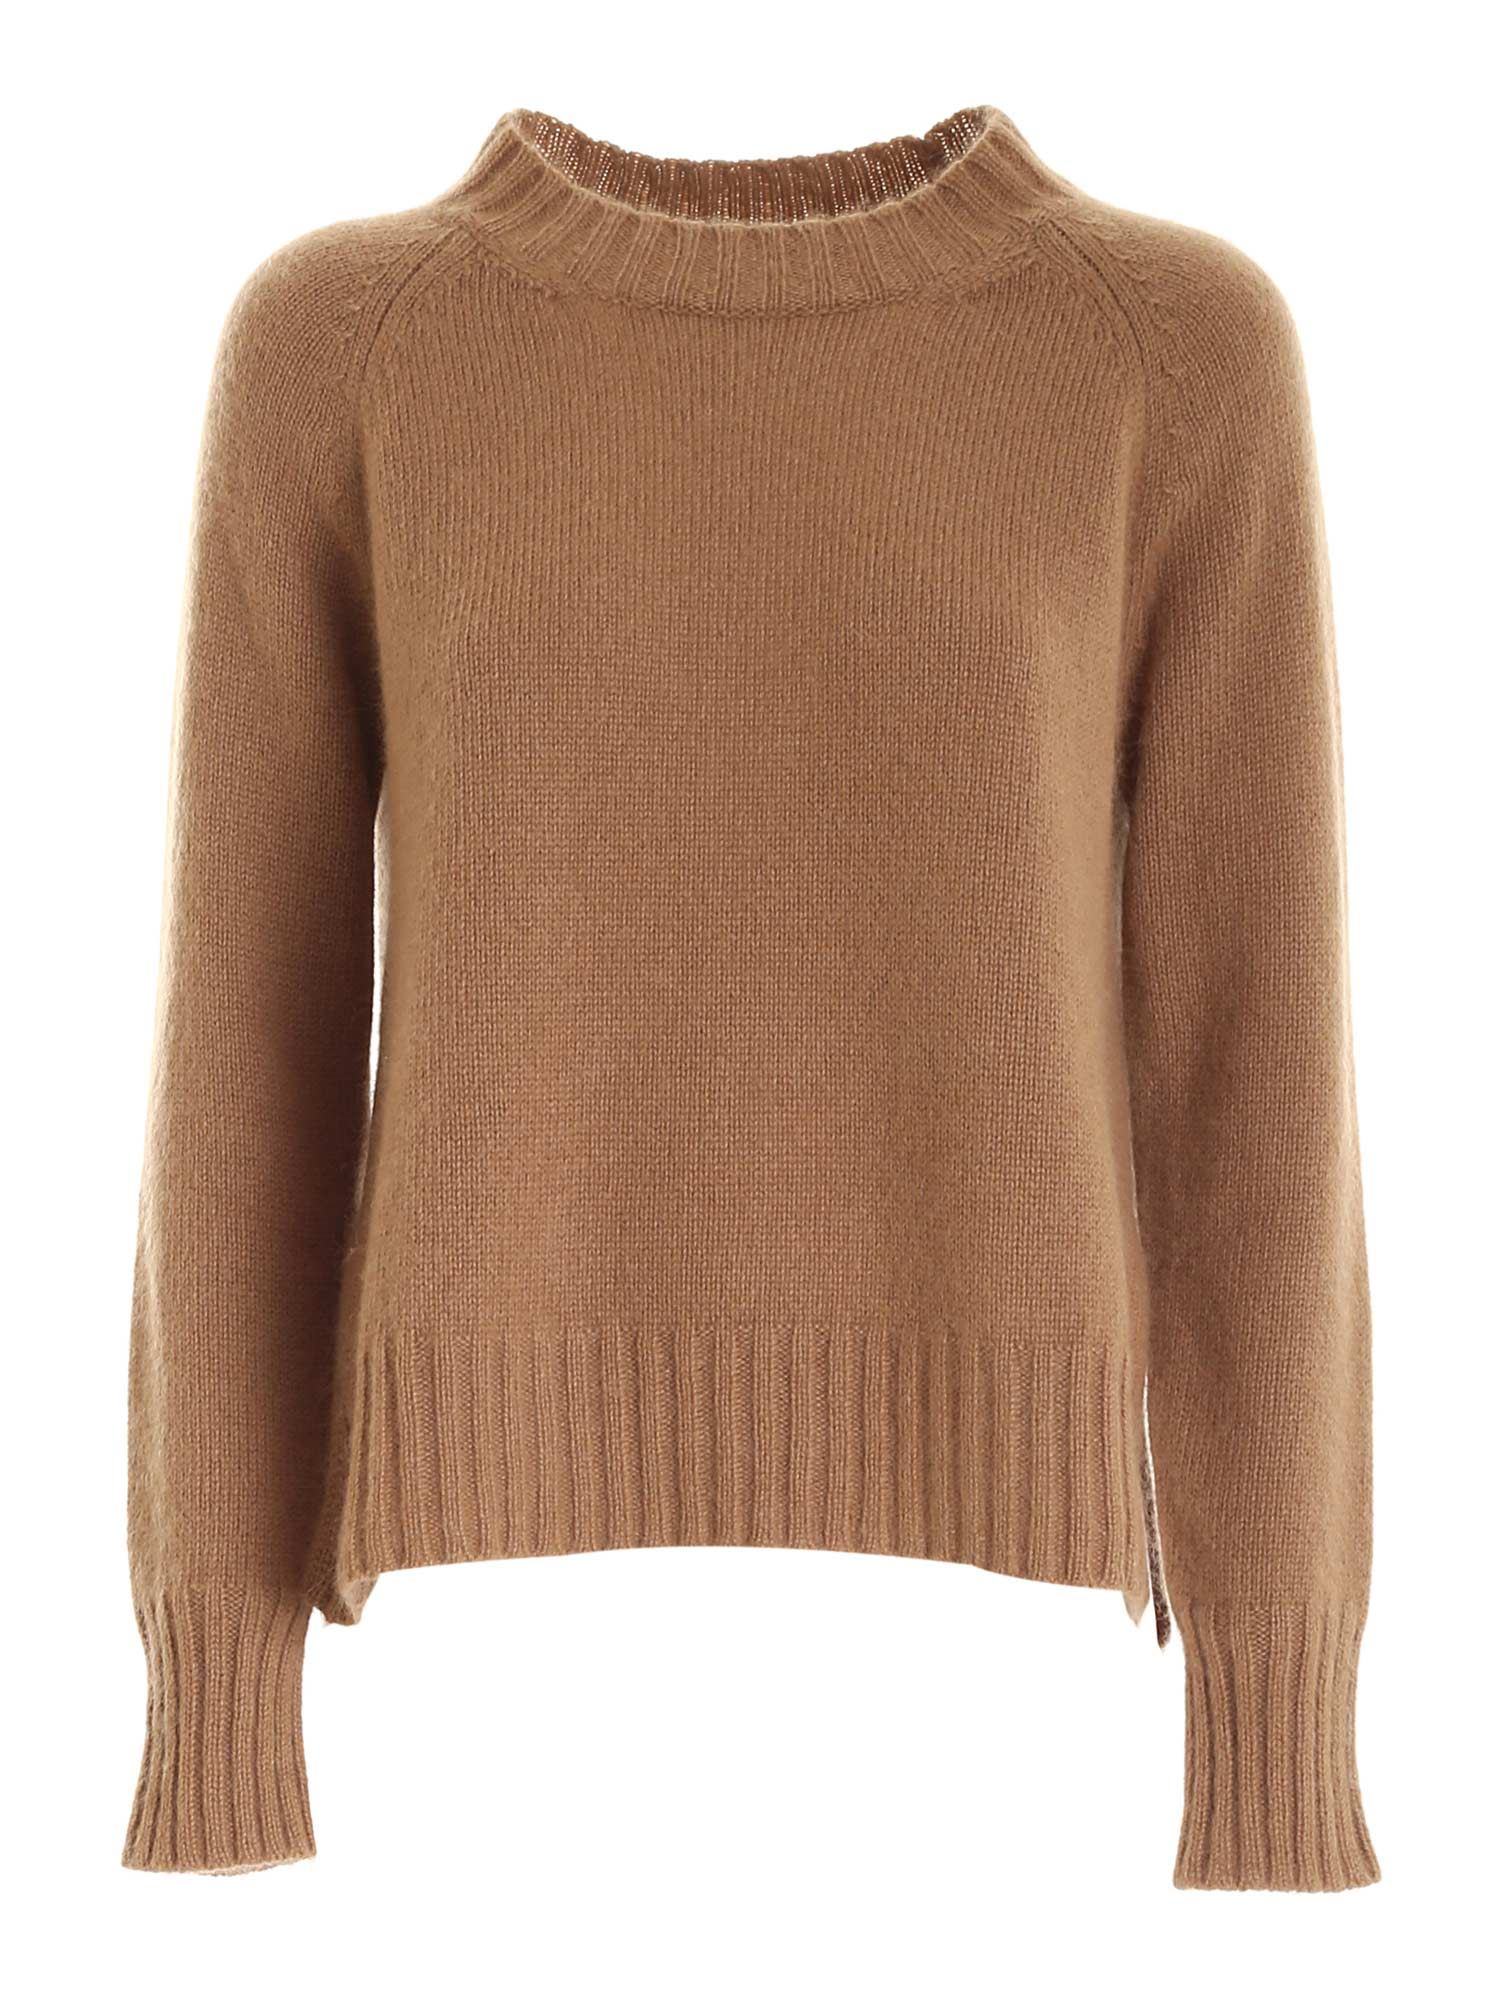 Max Mara CAIO PULLOVER IN CAMEL COLOR